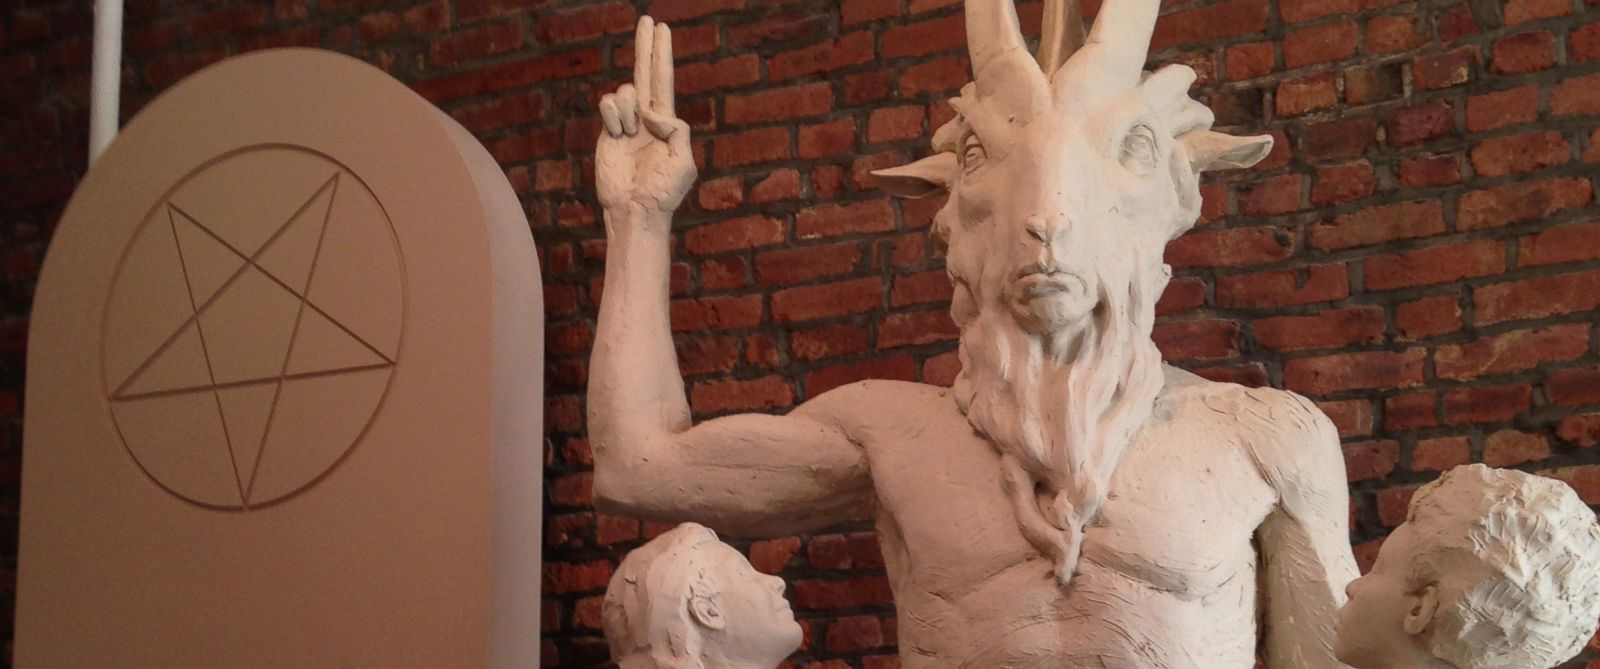 "PHOTO: Unfinished statue of Satan as Baphomet, a ""goat-headed, angel-winged, androgynous creature."""